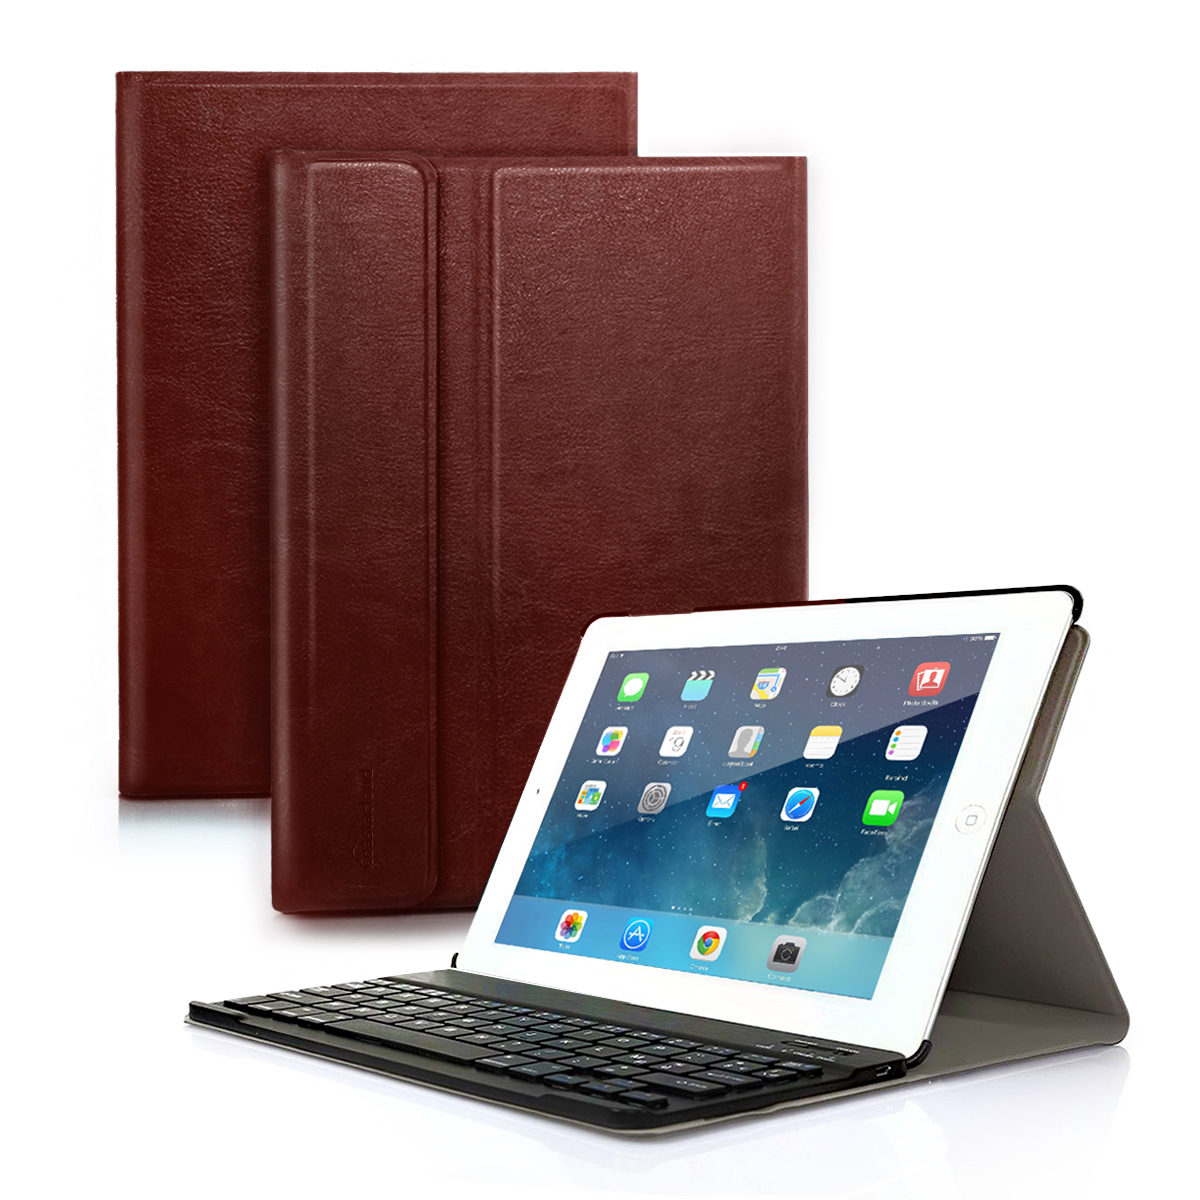 Wireless Bluetooth Keyboard with case cover PU Leather for iPad air 1 New Apple iPad 2017(9.7inch) Rechargeable  USB Cable Removeable Keyboard PU Leather